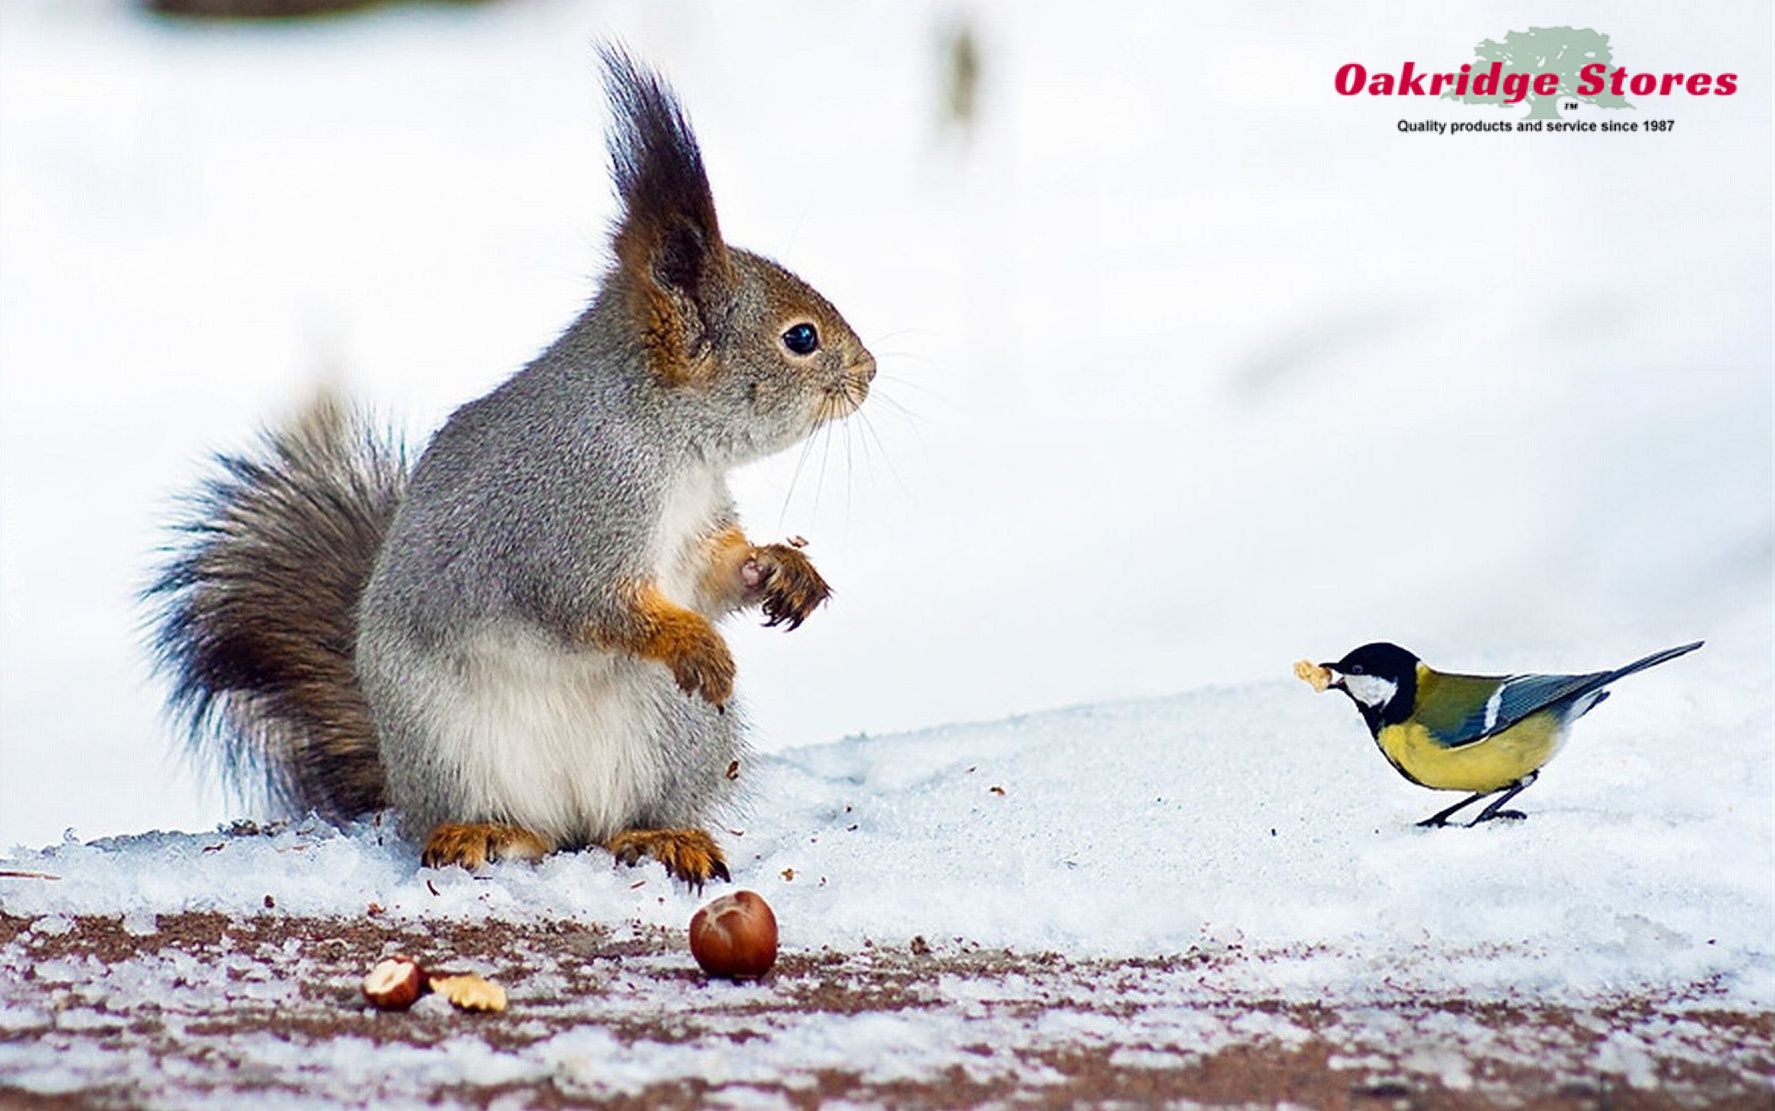 Make sure your Birds and Critters have plenty of Food and Water. Image